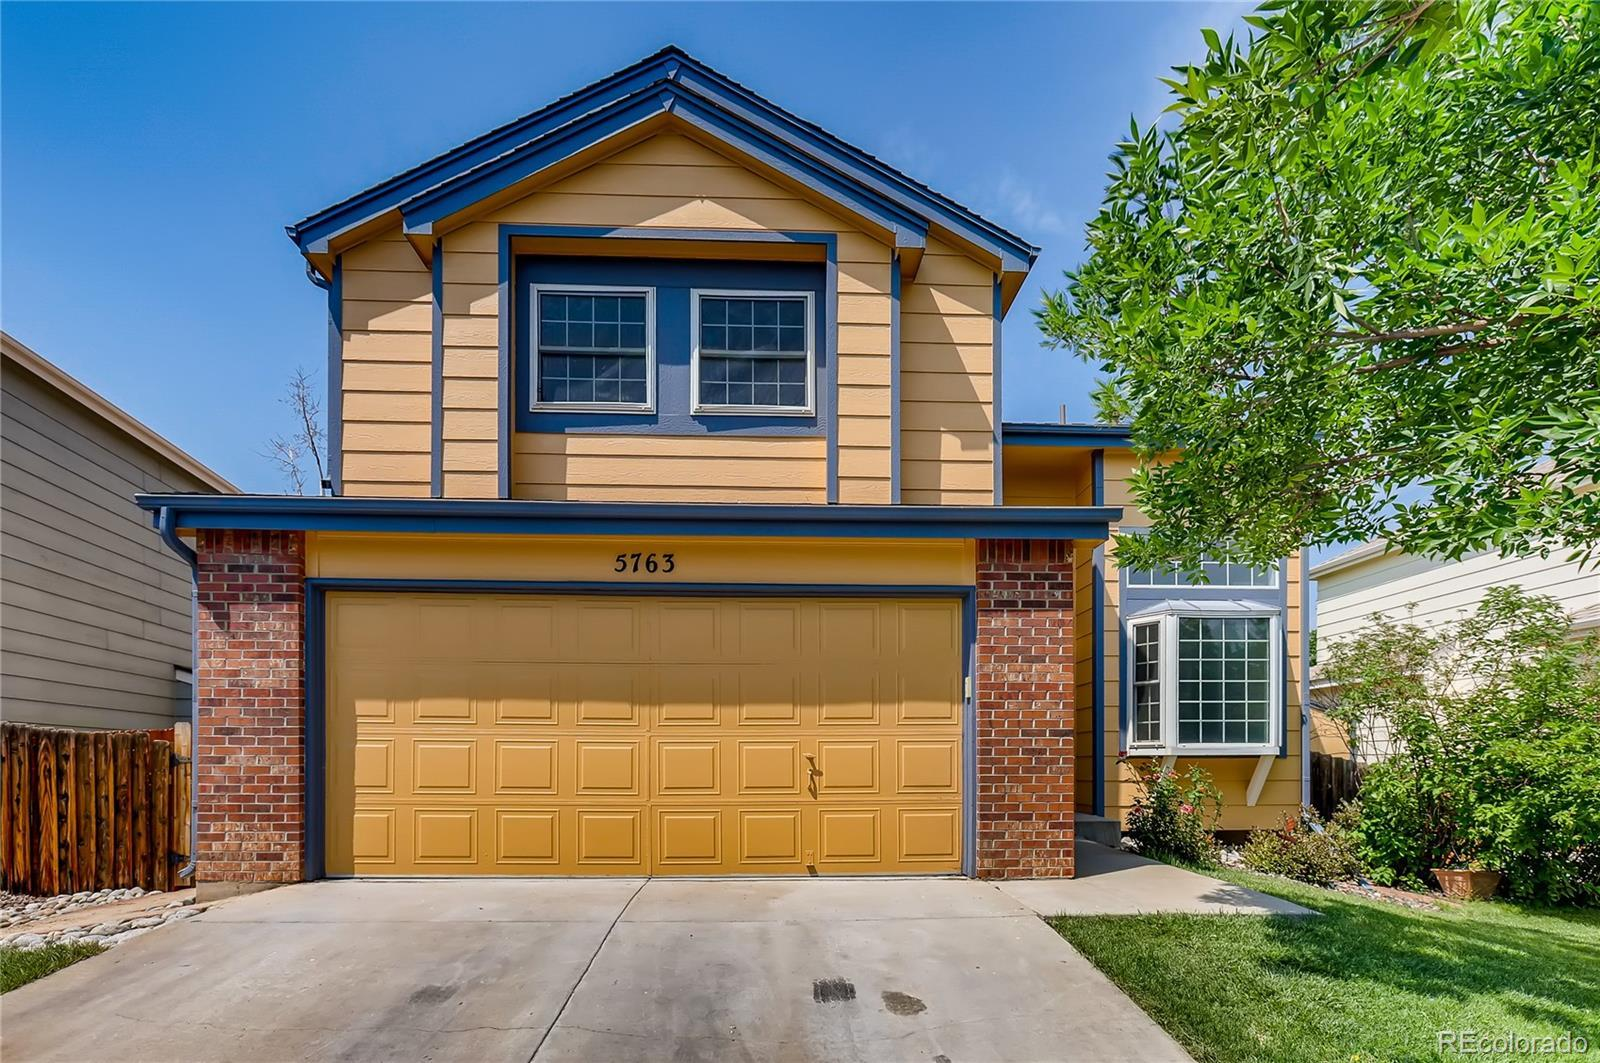 5763 W 118th Place, Westminster, CO 80020 - #: 4218600